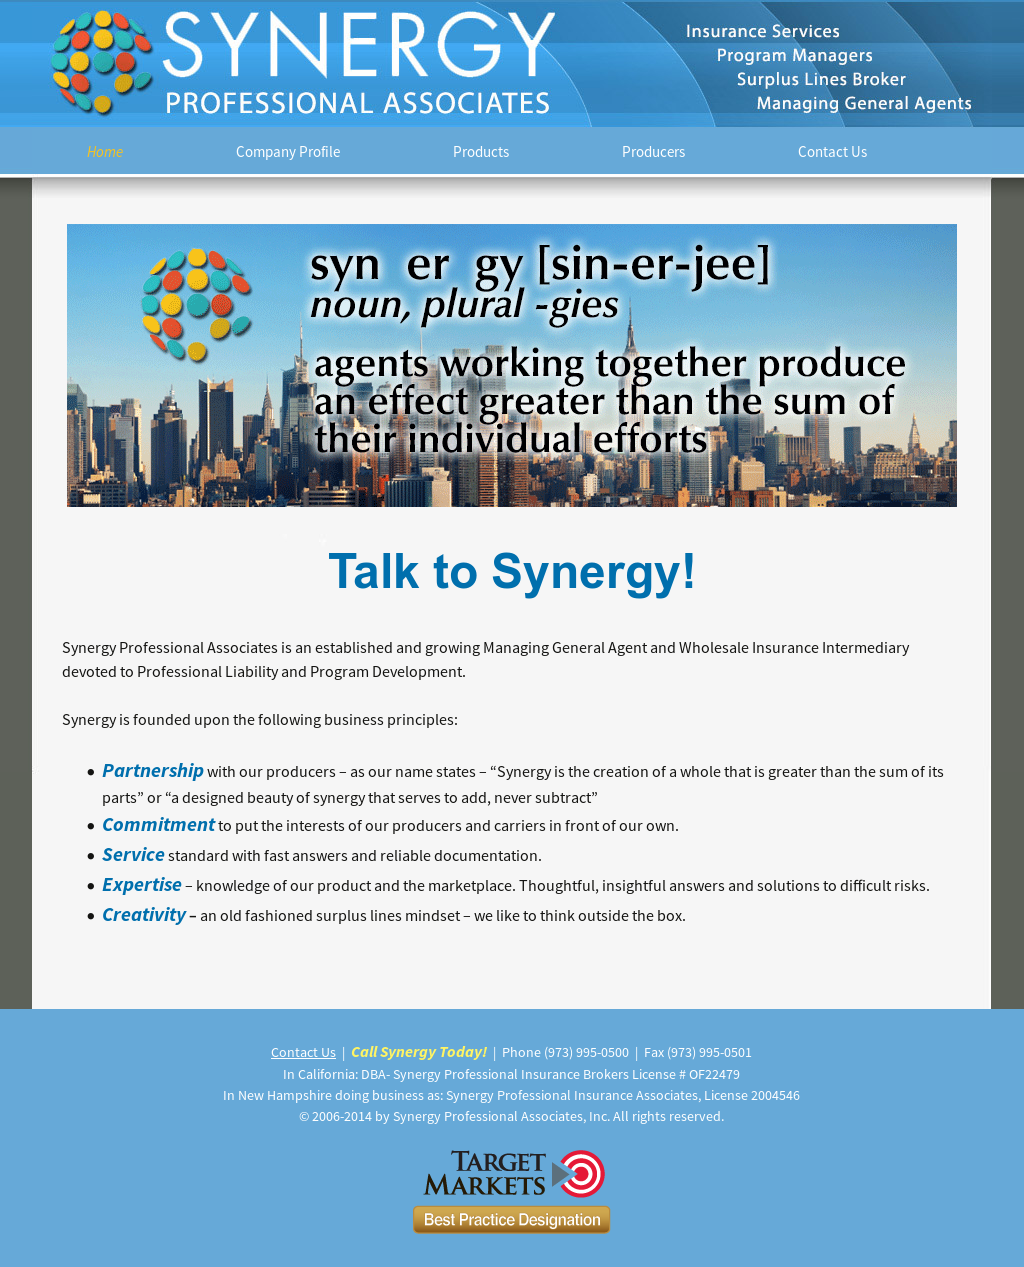 Synergy Professionals Associates Competitors, Revenue and